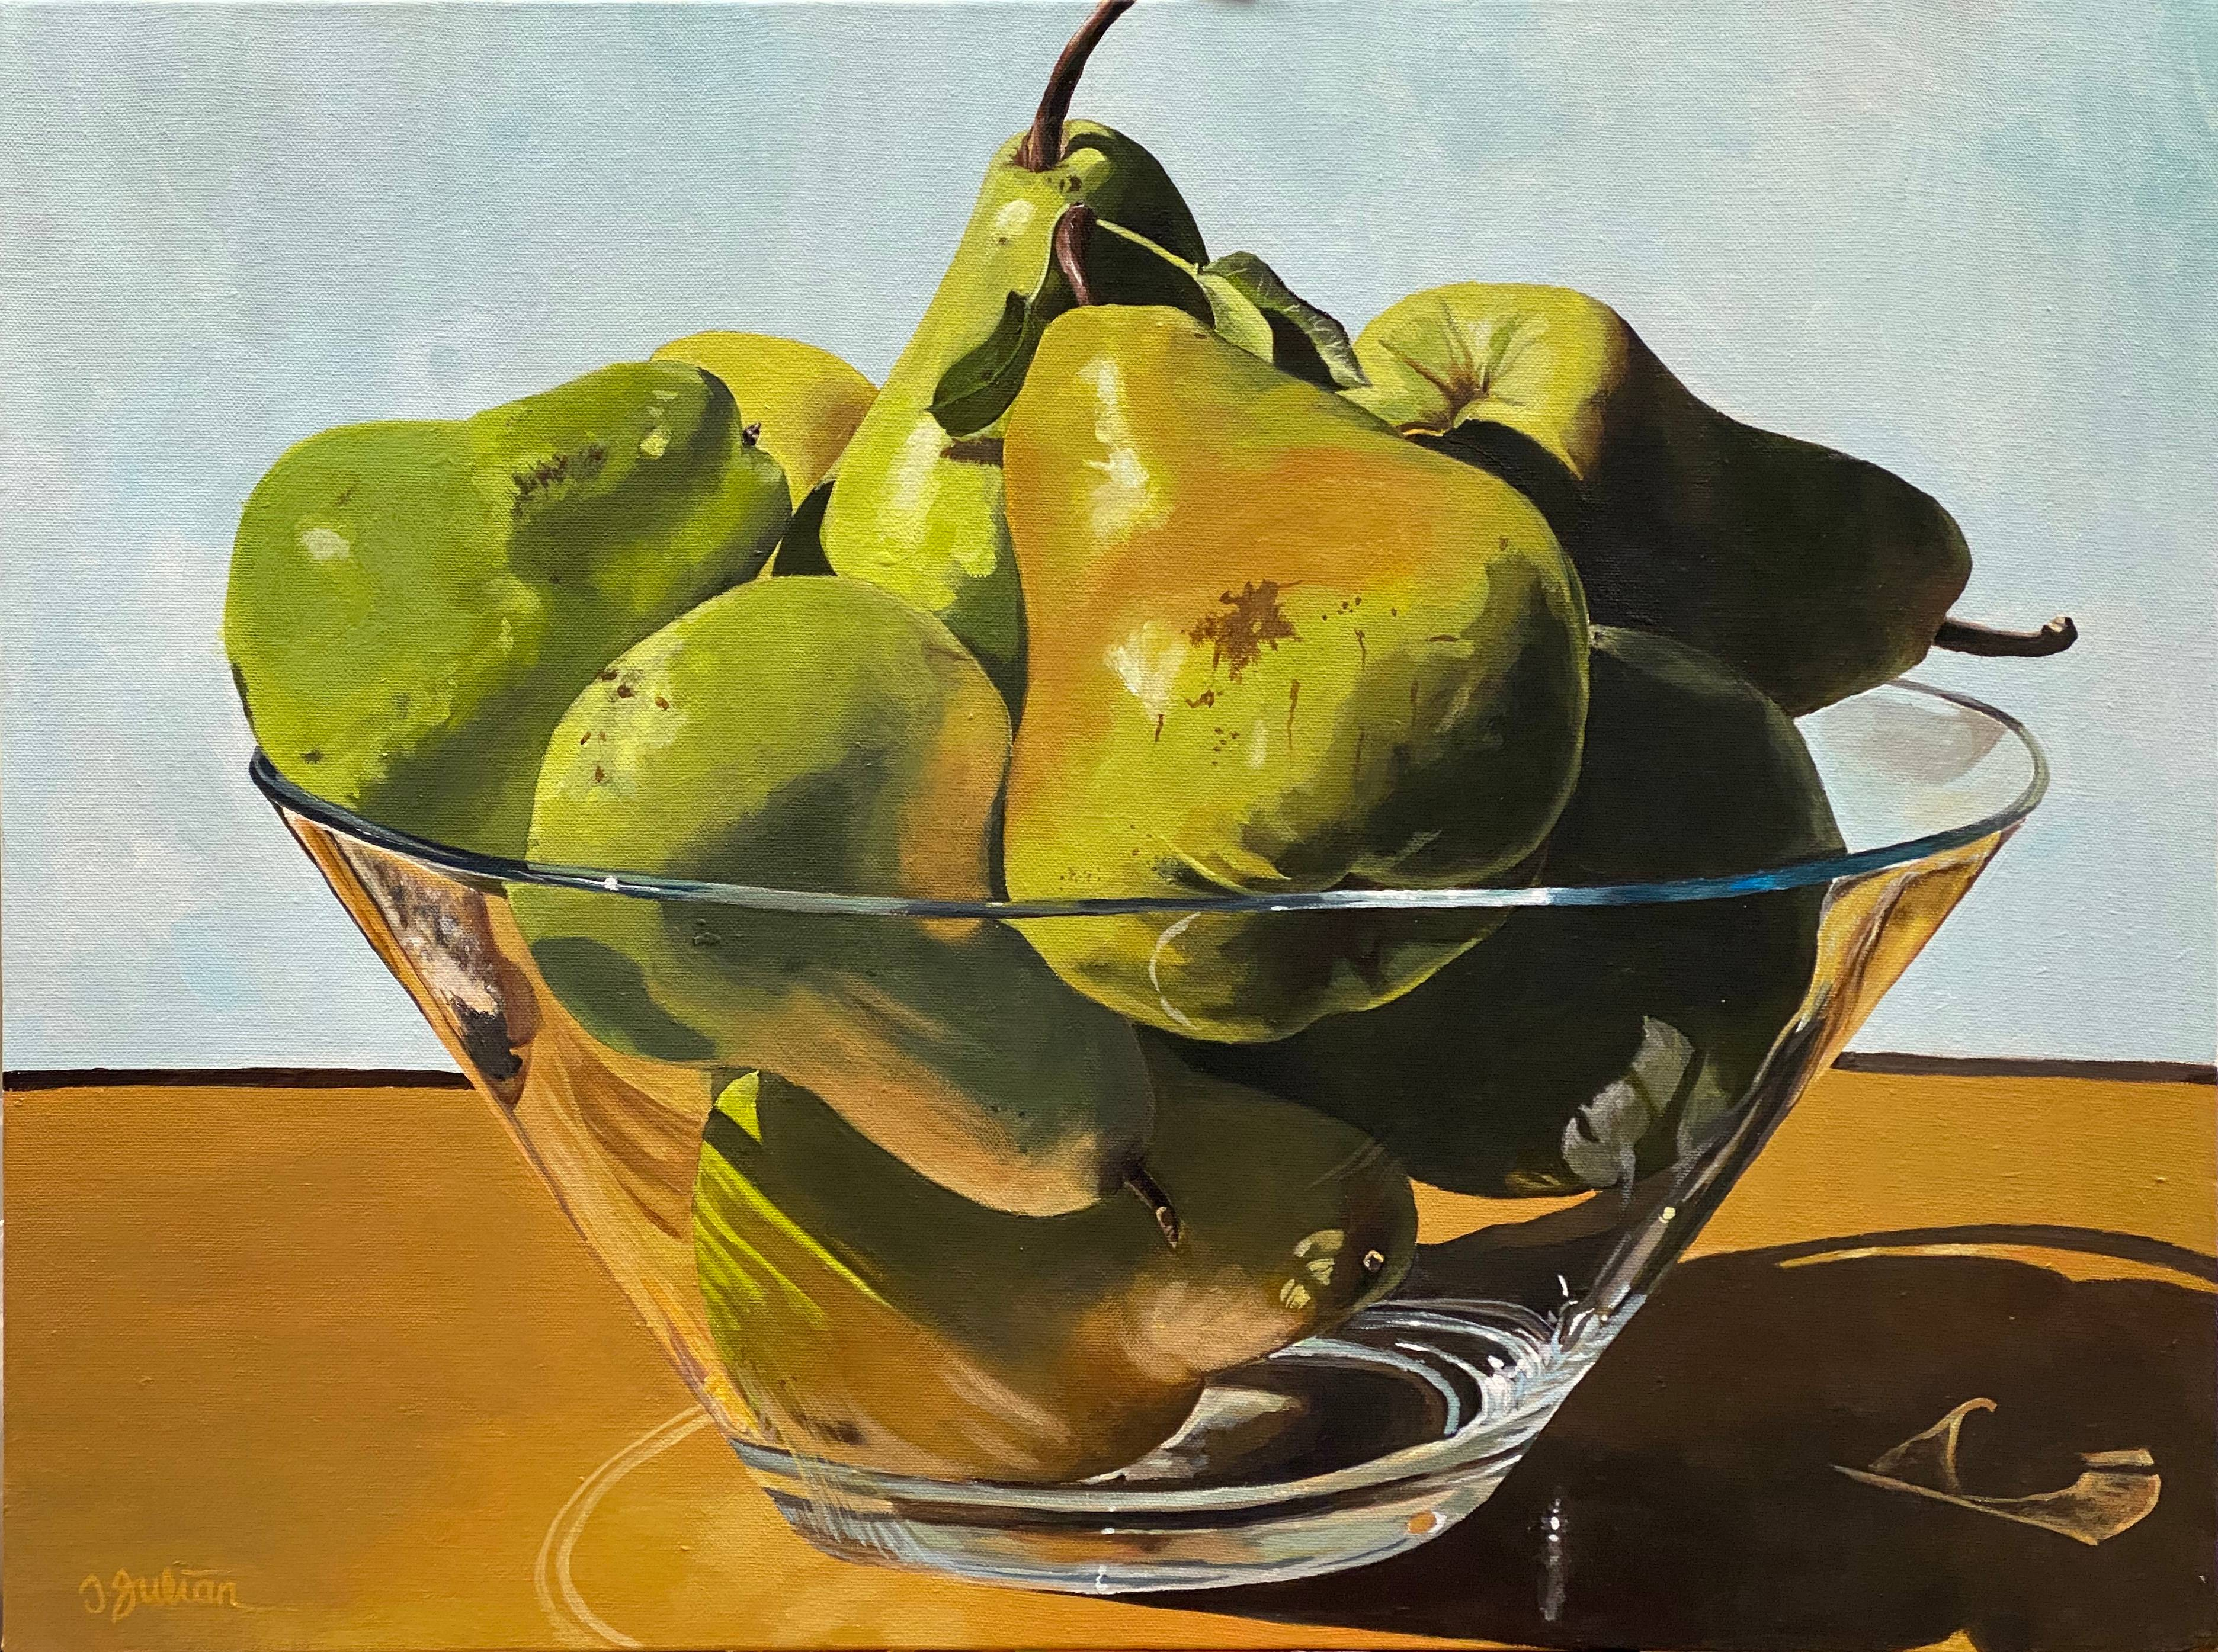 Sunlight through glass with pears